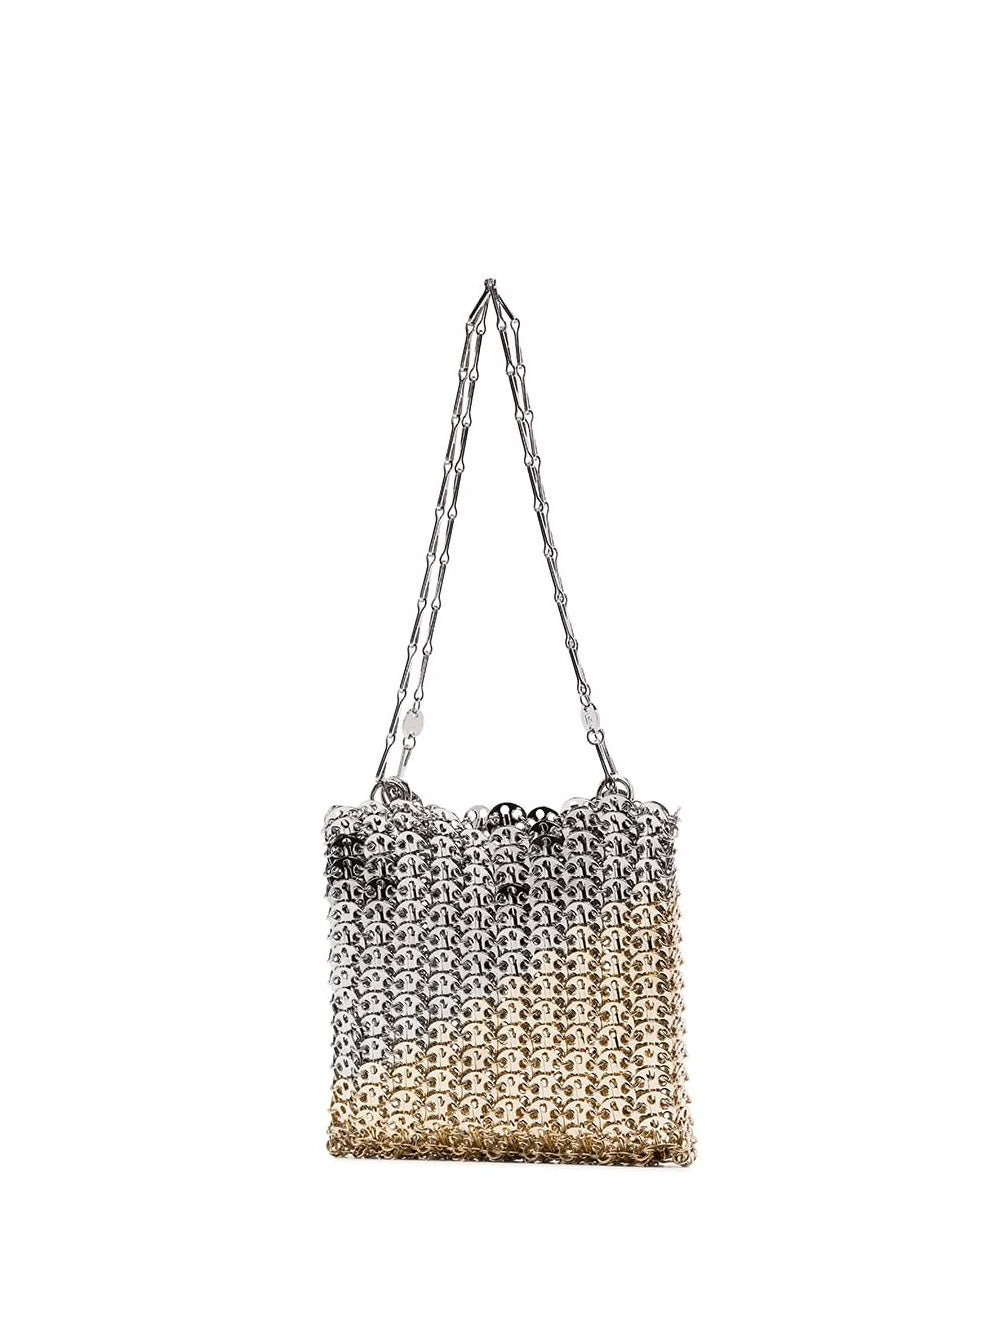 PACO RABANNE WOMEN 1969 ICONIC METALLIC DISC BAG